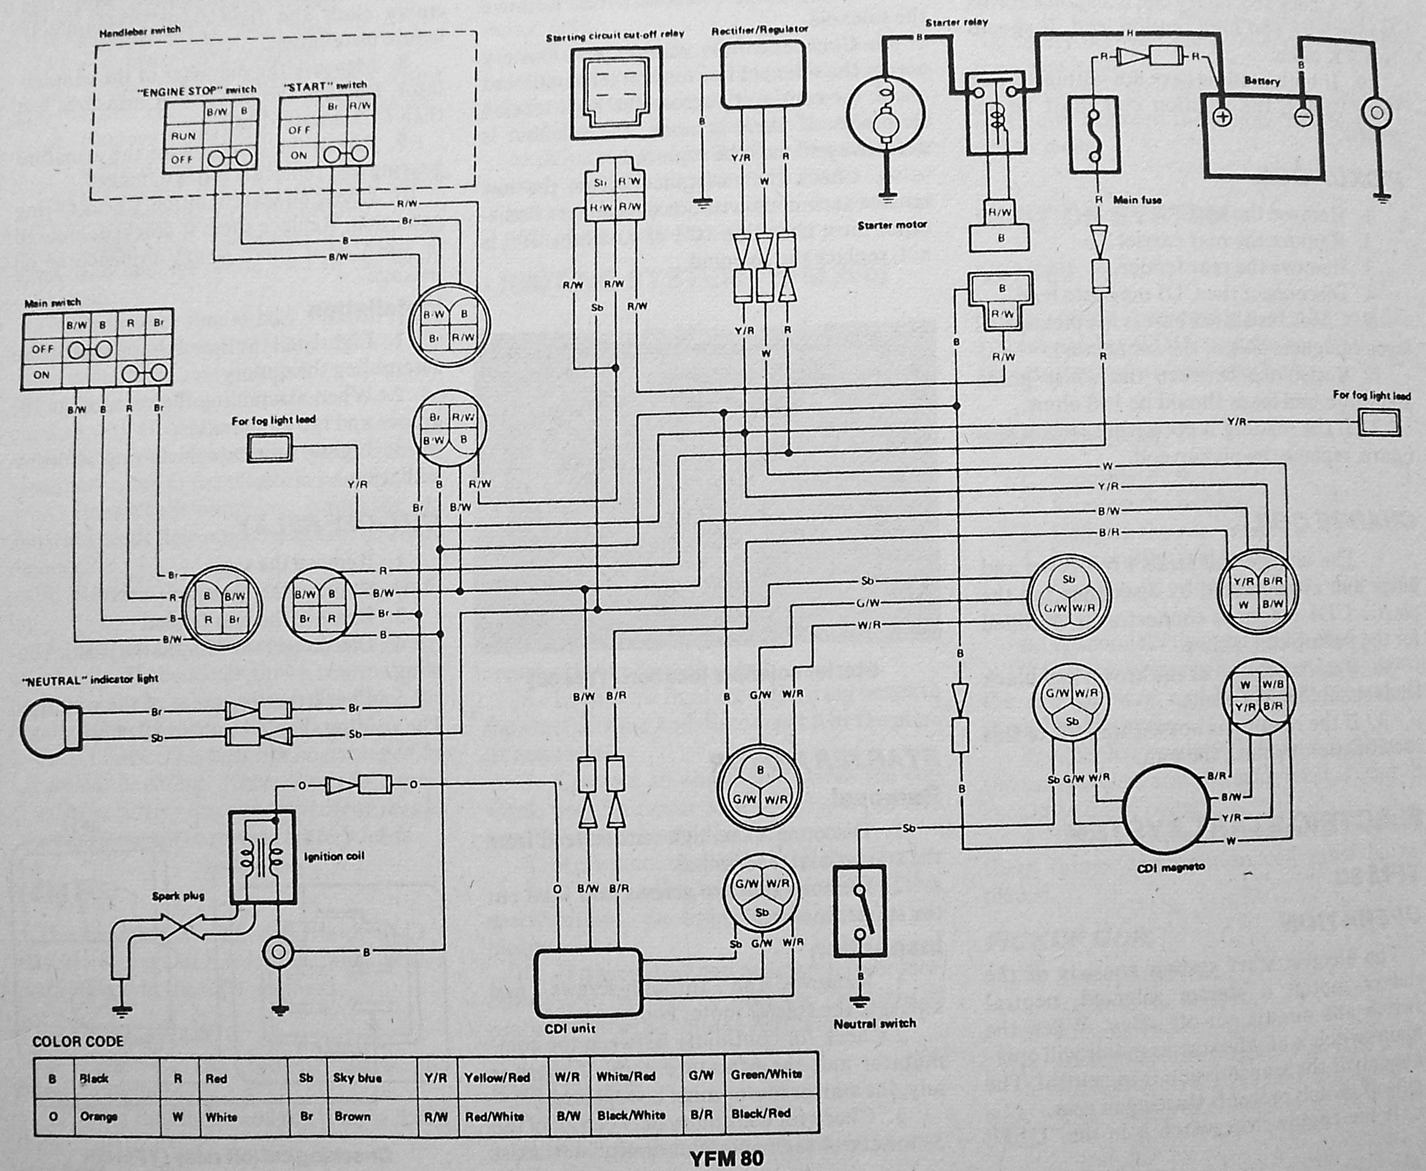 yamaha moto 4 80 wiring diagram schematic diagram Yamaha Moto 4 200 Red moto 4 80cc wiring diagram wiring library wiring schematic for 87 yamaha warrior 12 fiat 500